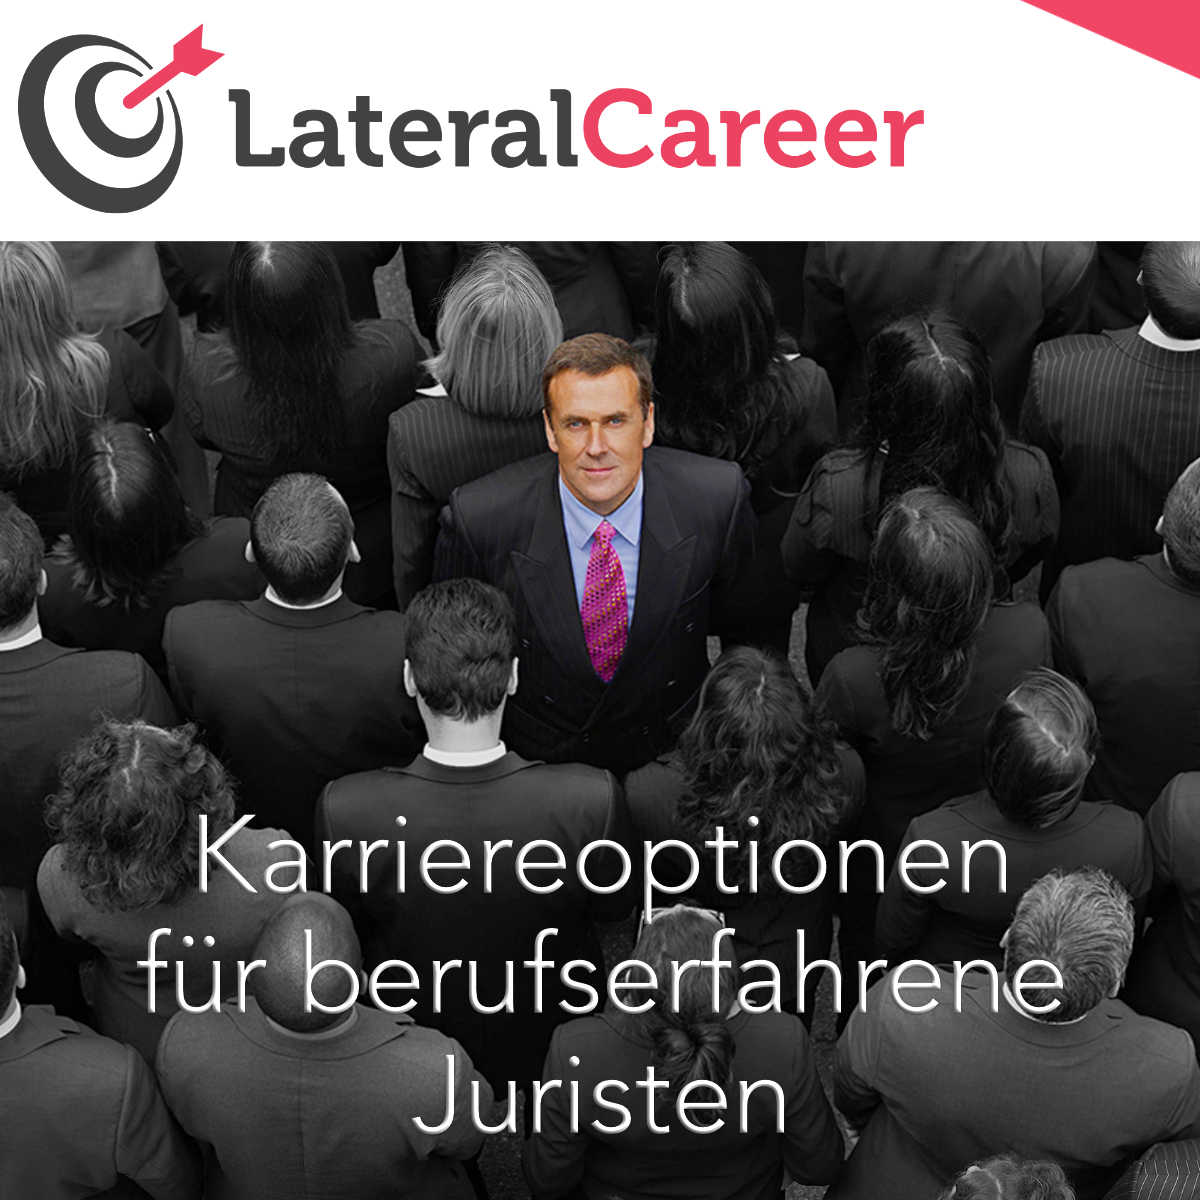 LateralCareer